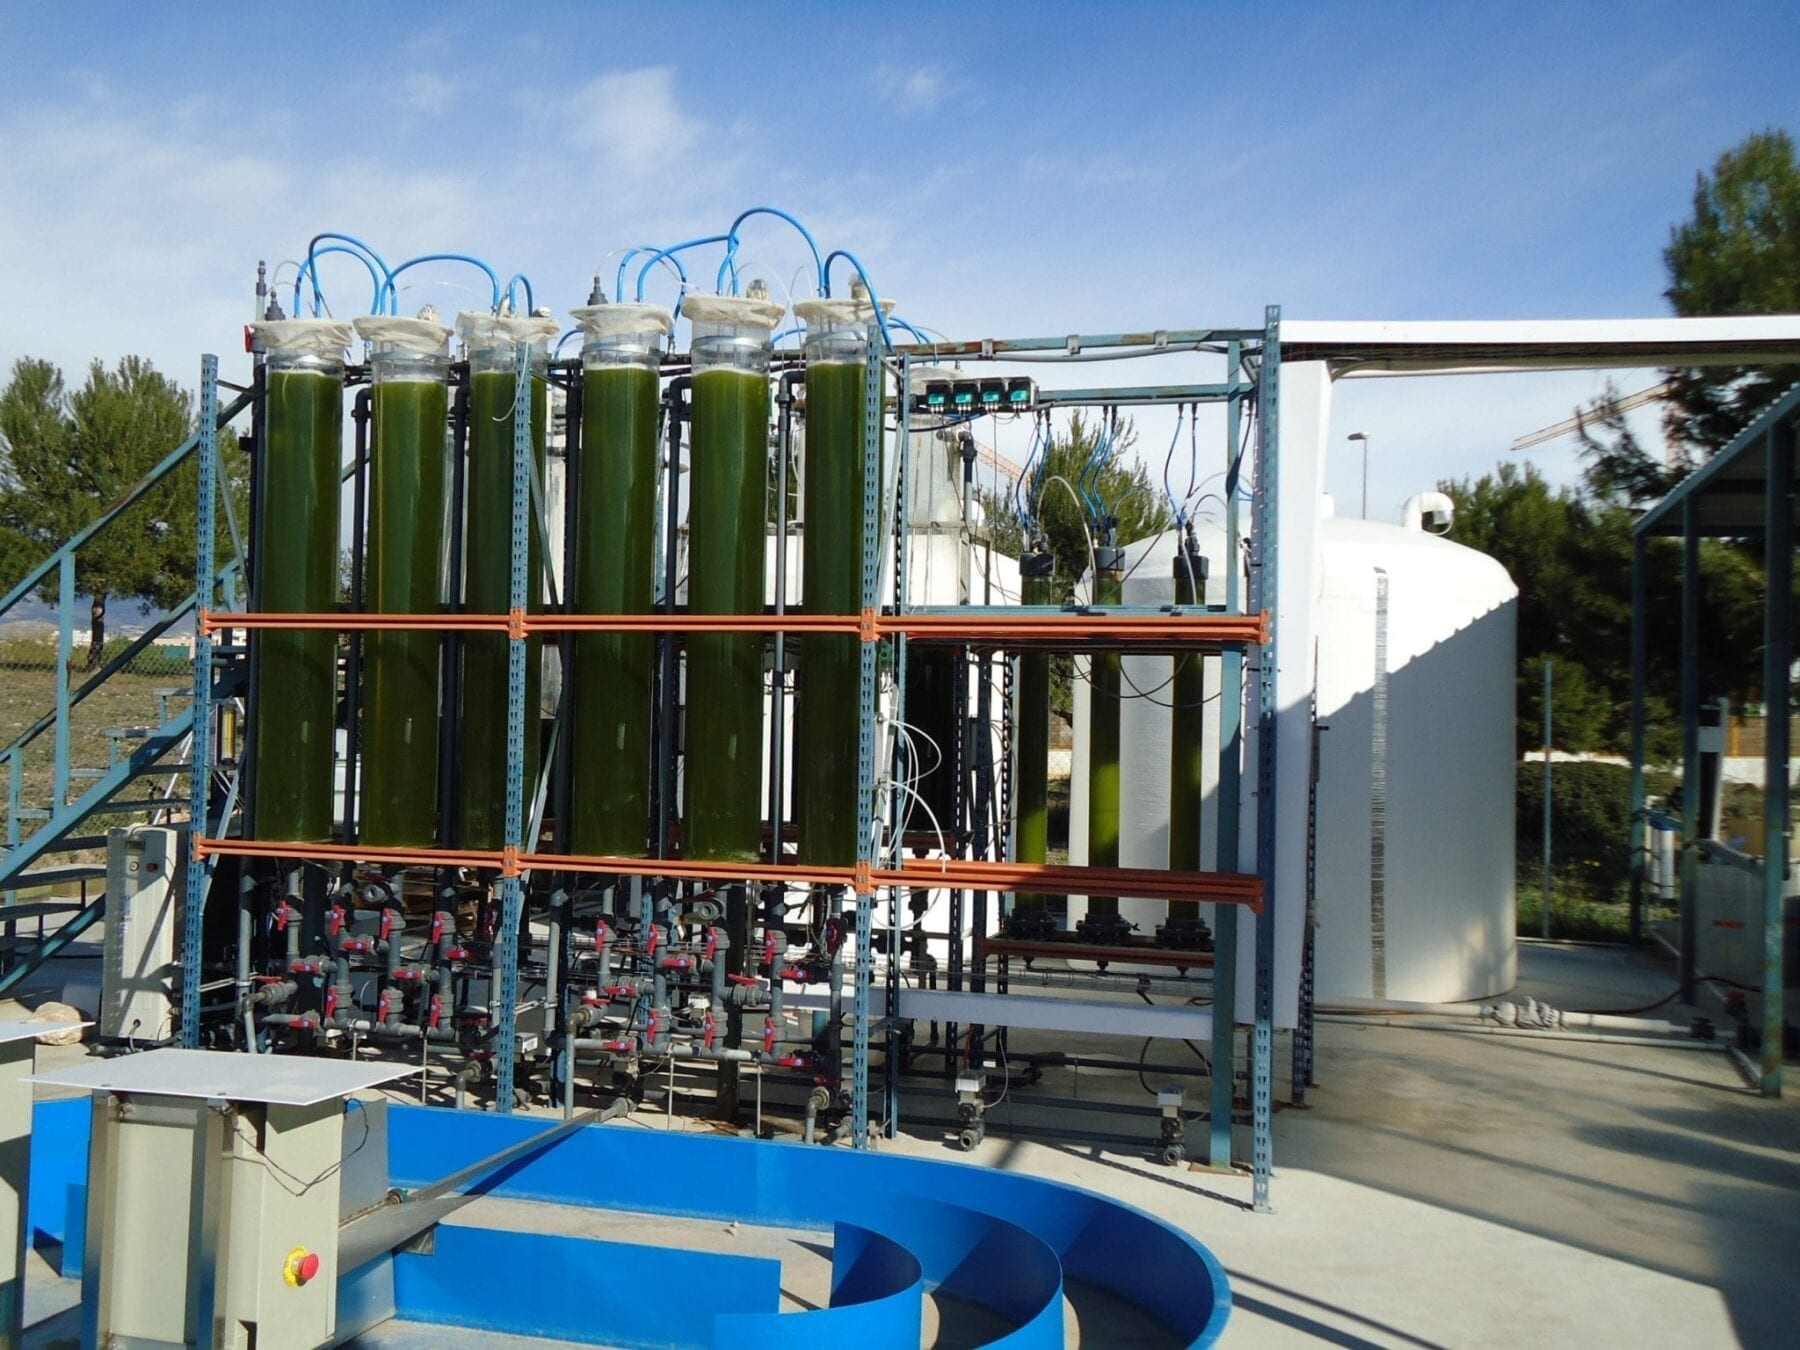 UA researchers design a photobioreactor to produce biofuel from algae